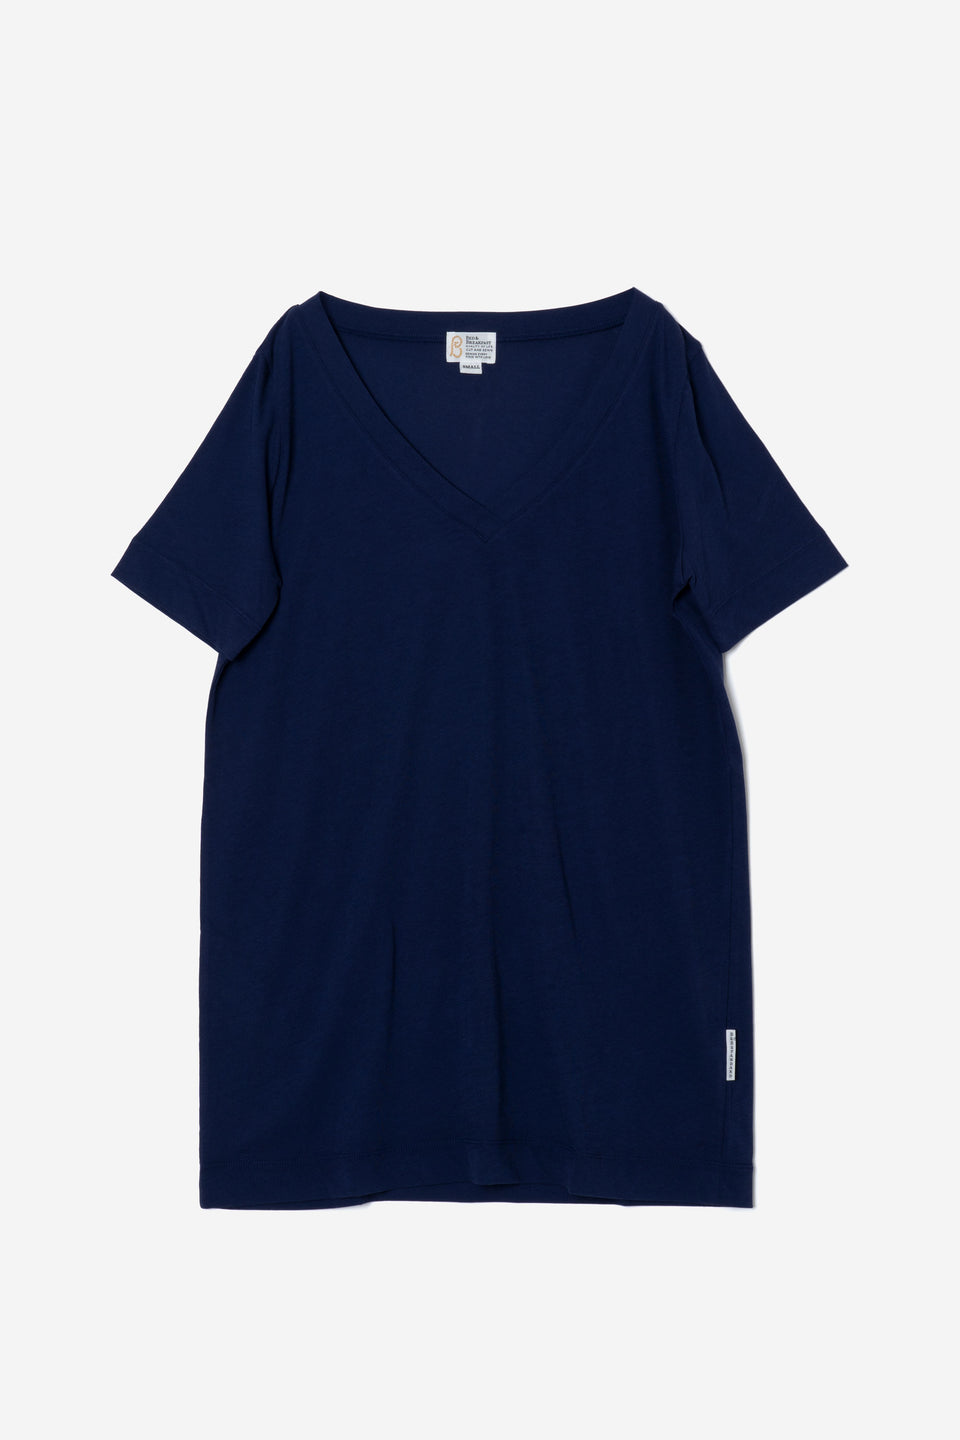 Technorama Standard V-neck Tee Dress in Navy